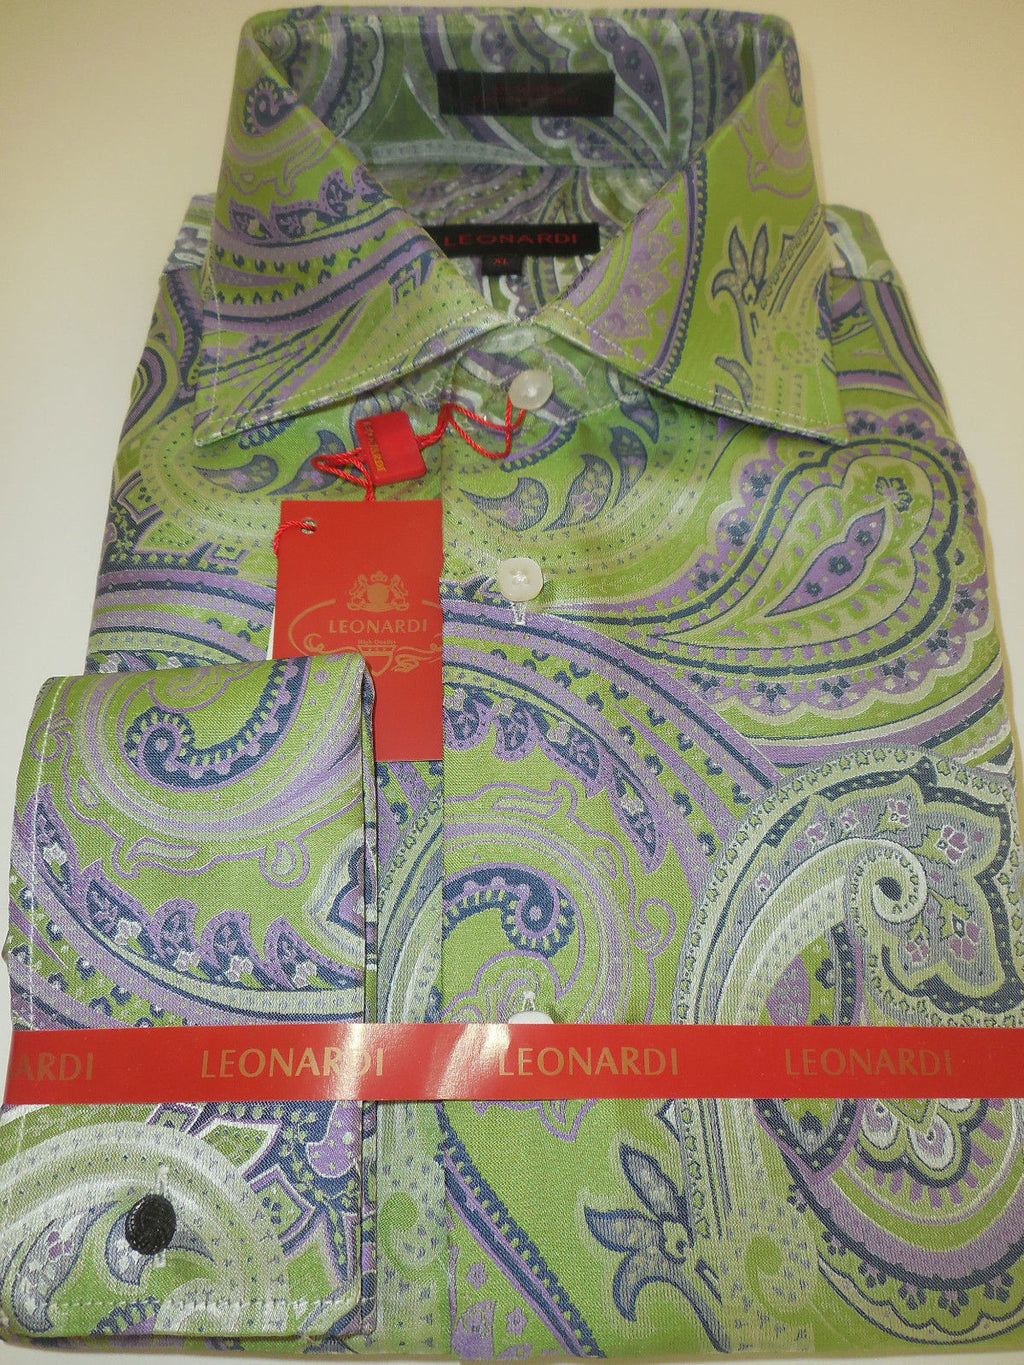 Mens Lite Lime & Lavender Exquisite Paisley French Cuff Leonardi Shirt Style 374 - Nader Fashion Las Vegas